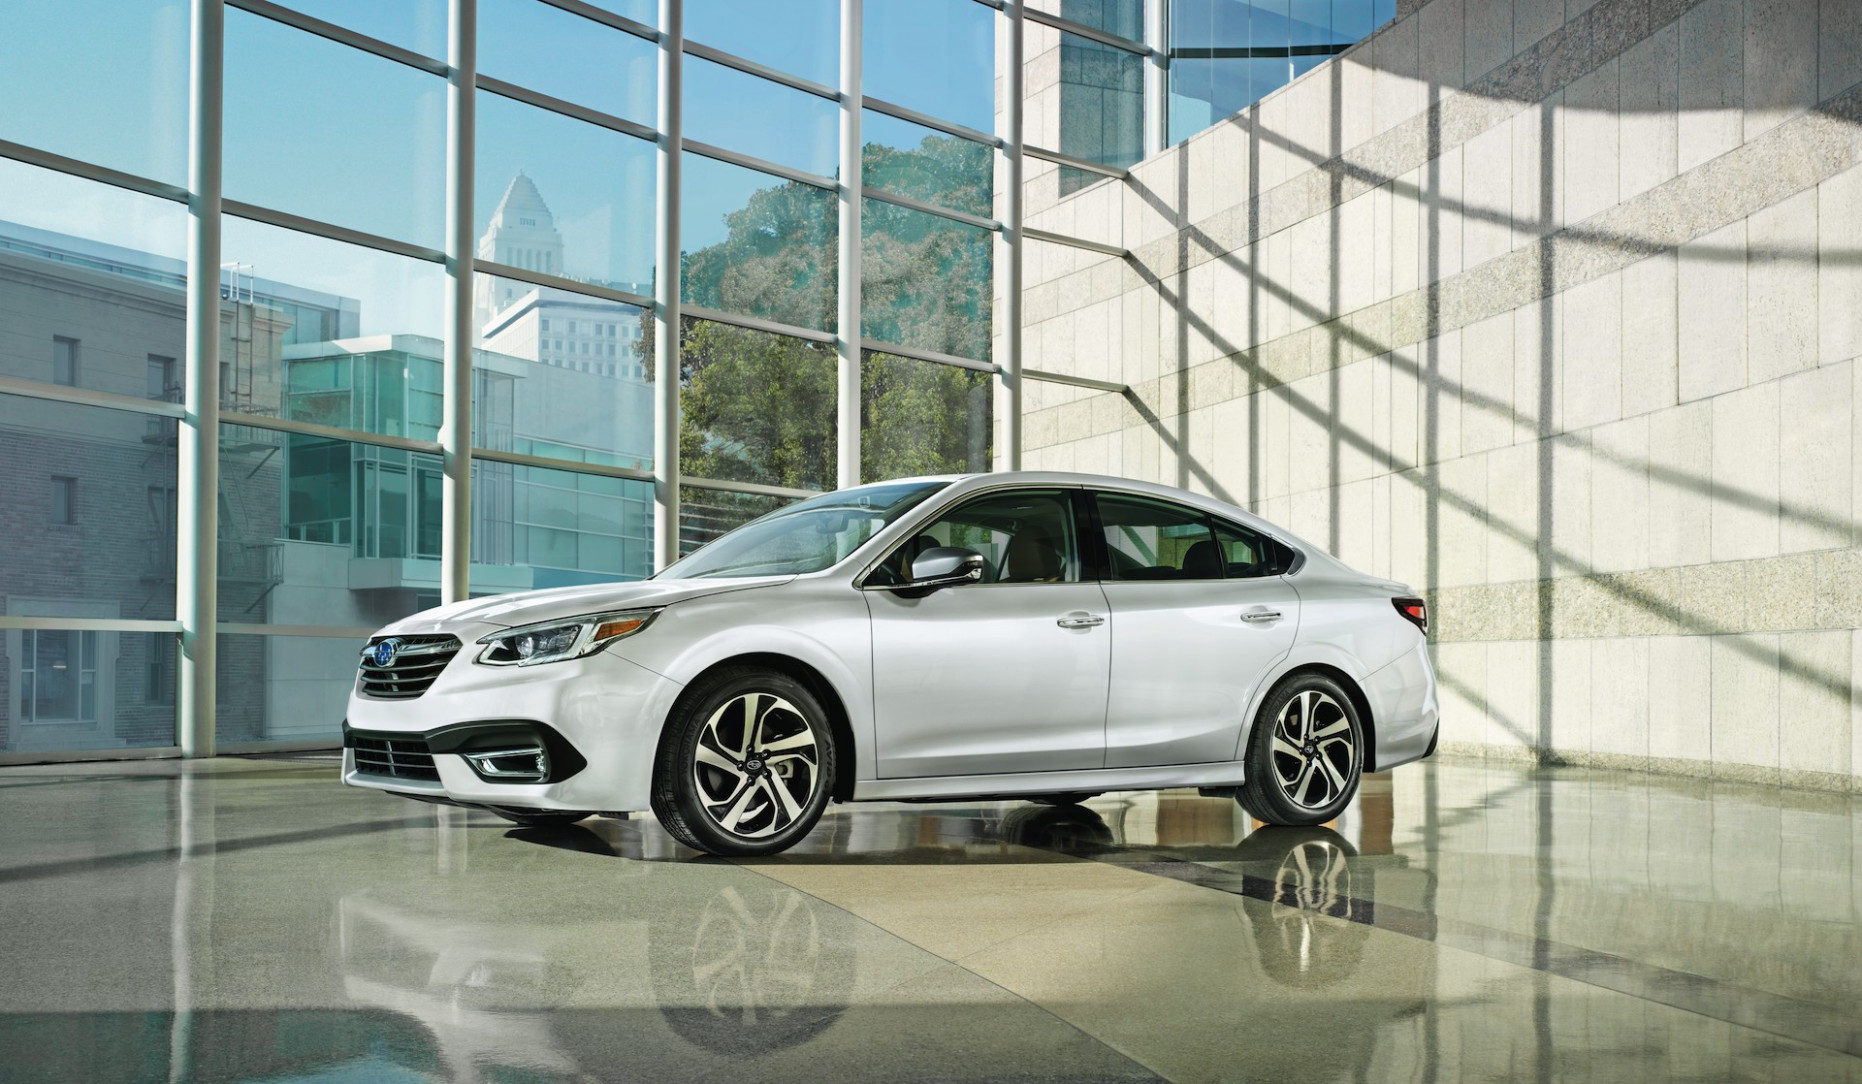 6 Subaru Legacy Review, Ratings, Specs, Prices, and Photos ..